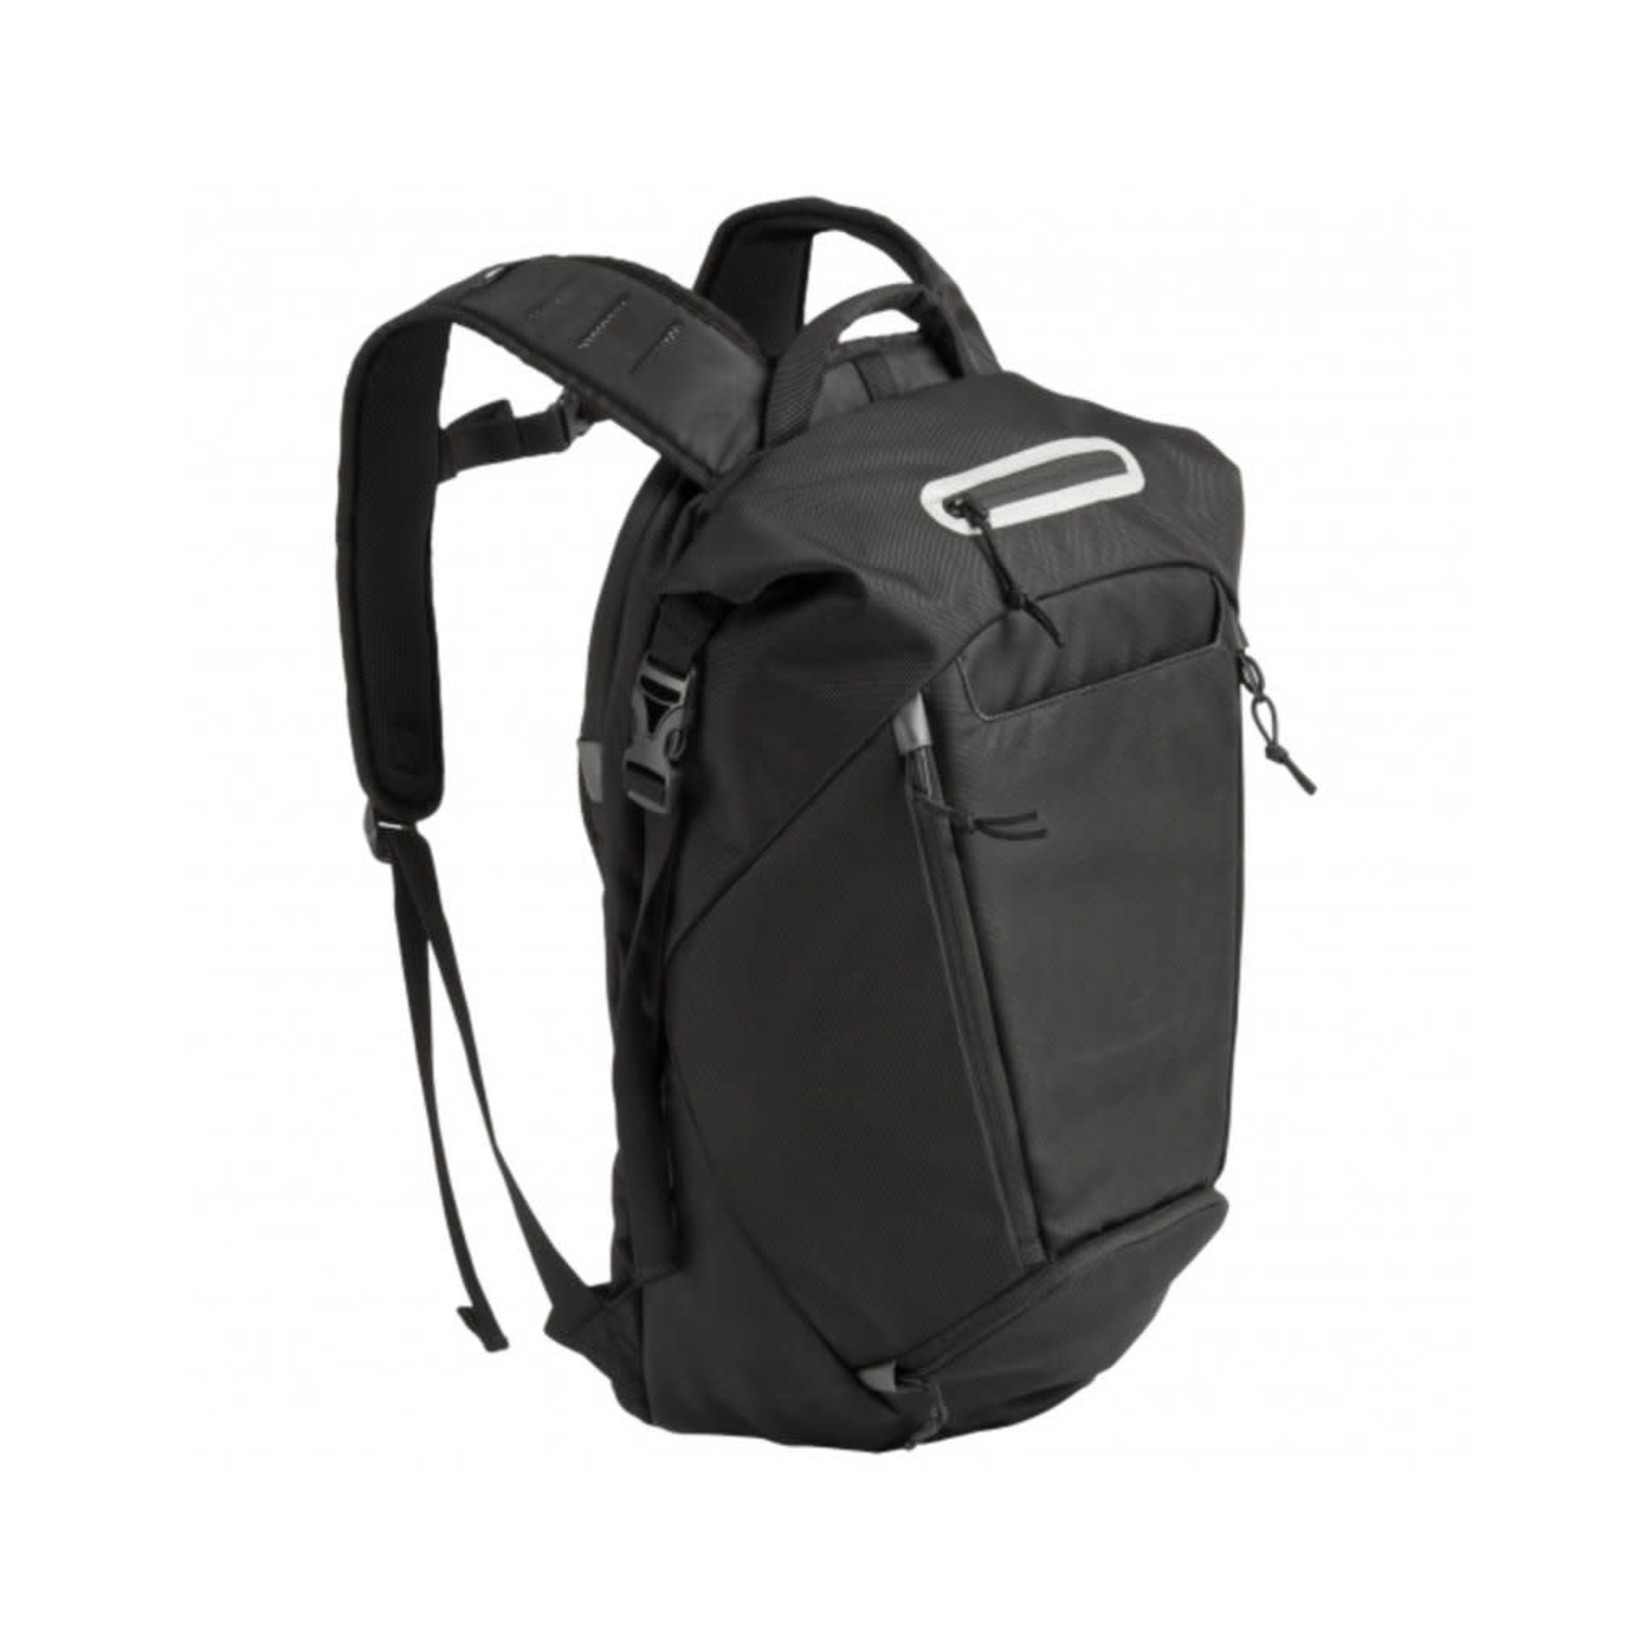 5.11 Tactical 5.11 Covert Boxpack